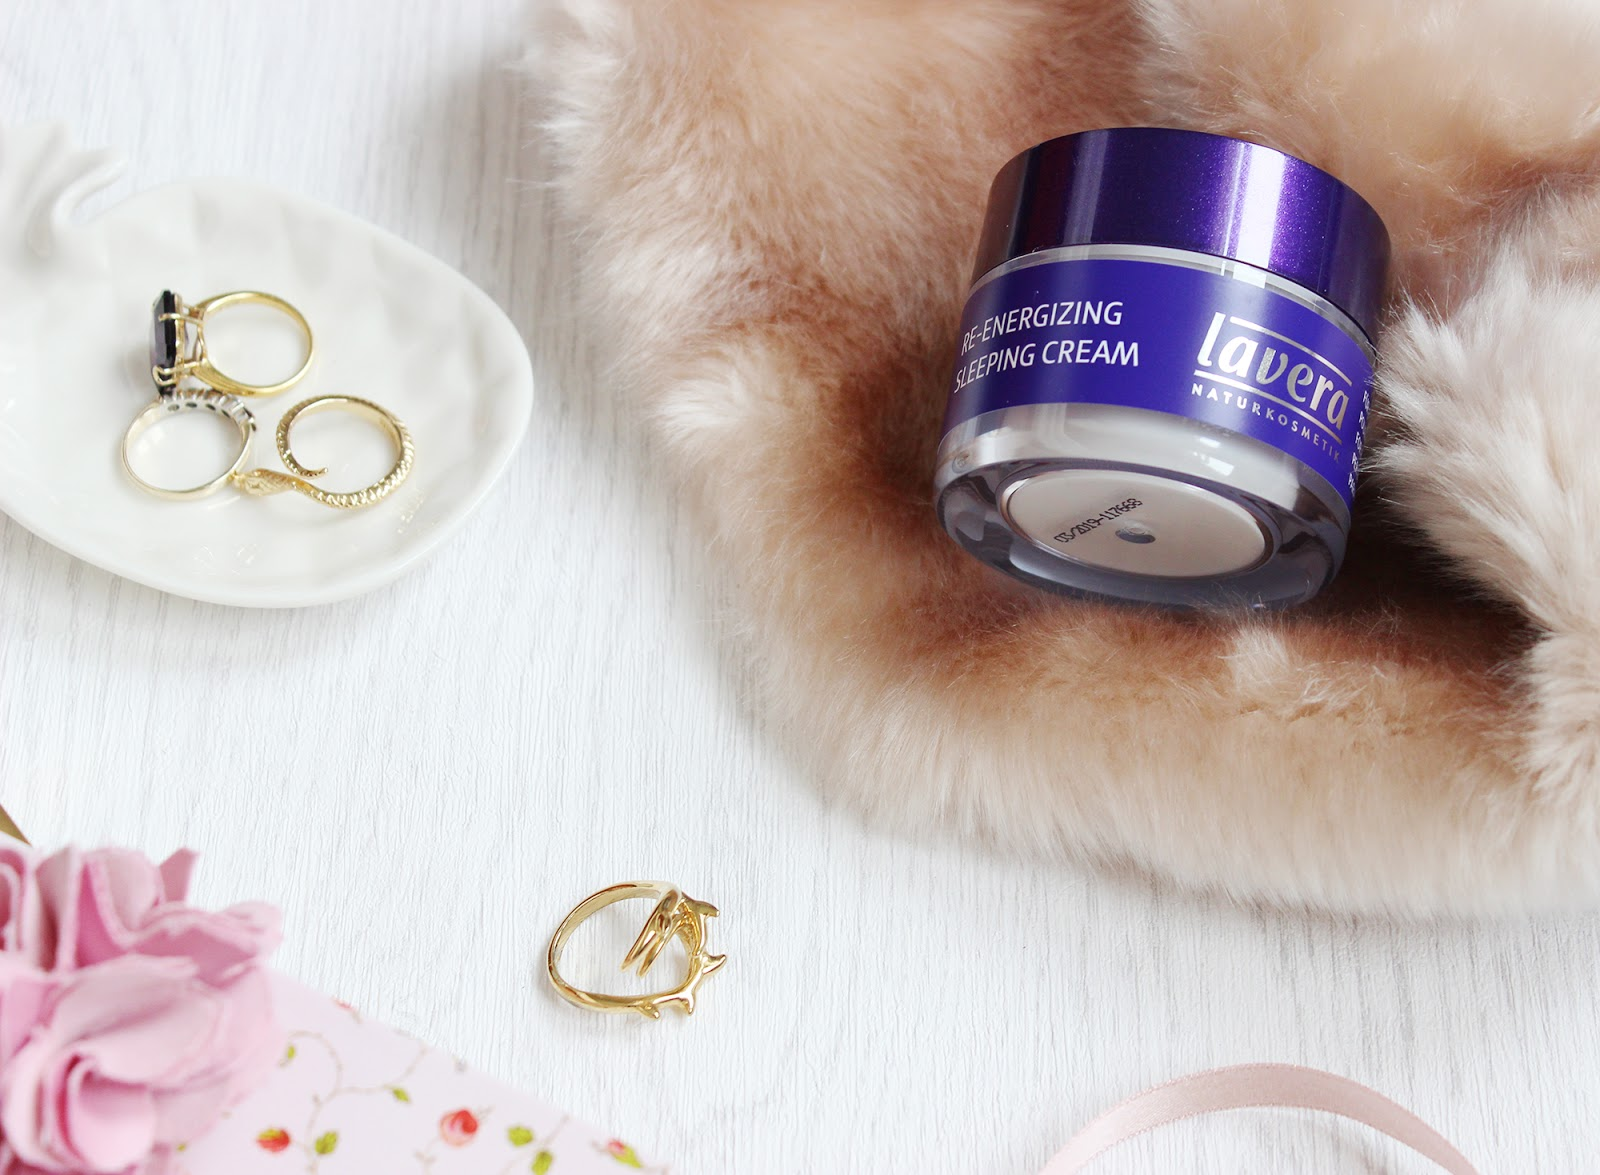 Lavera Re-energising Sleeping Cream review and giveaway